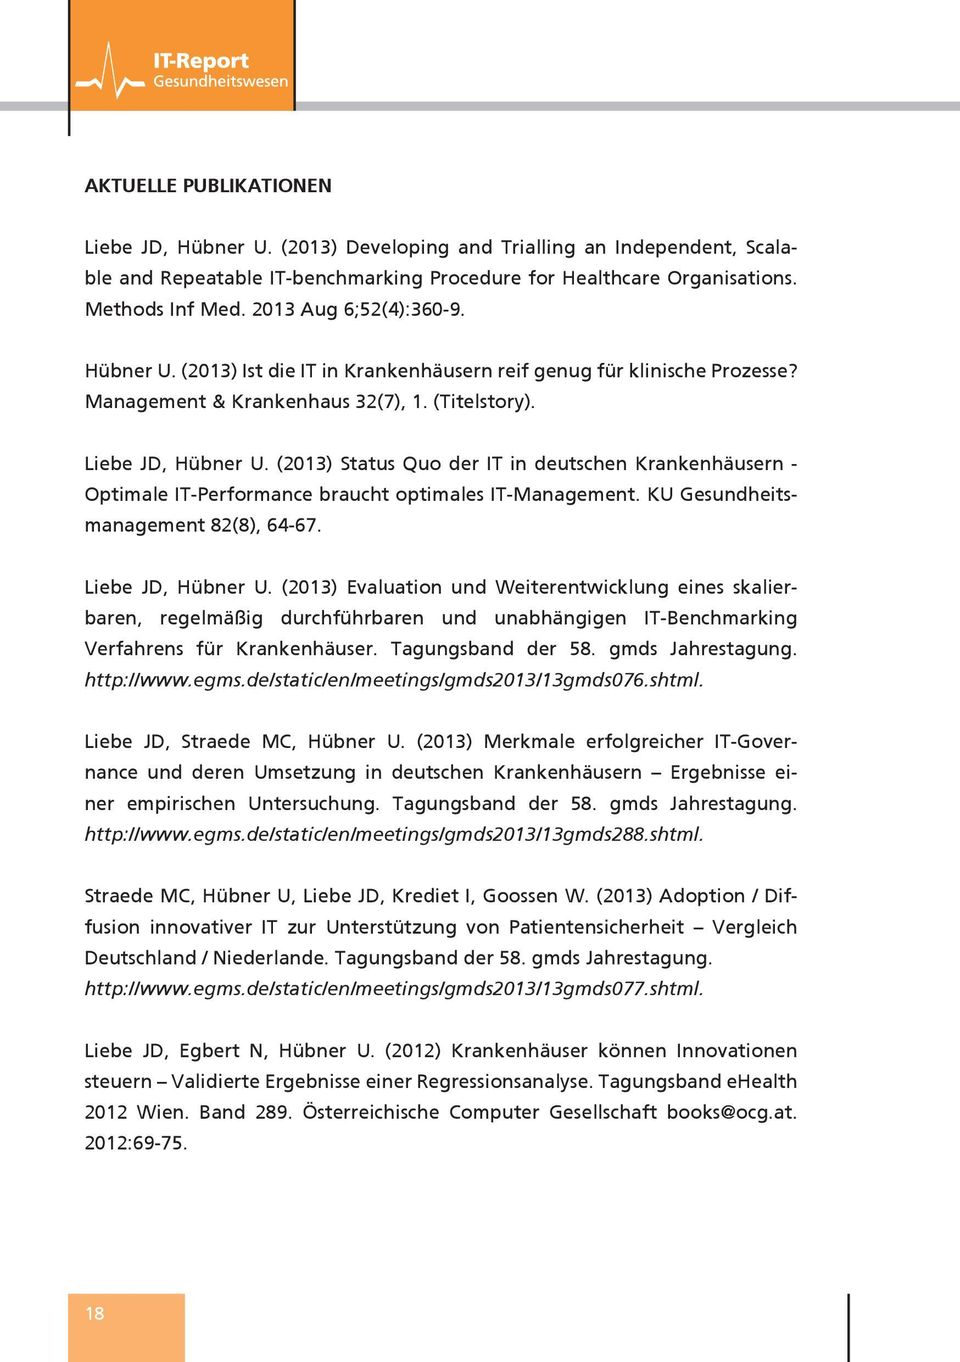 (2013) Status Quo der IT in deutschen Krankenhäusern - Optimale IT-Performance braucht optimales IT-Management. KU Gesundheitsmanagement 82(8), 64-67. Liebe JD, Hübner U.